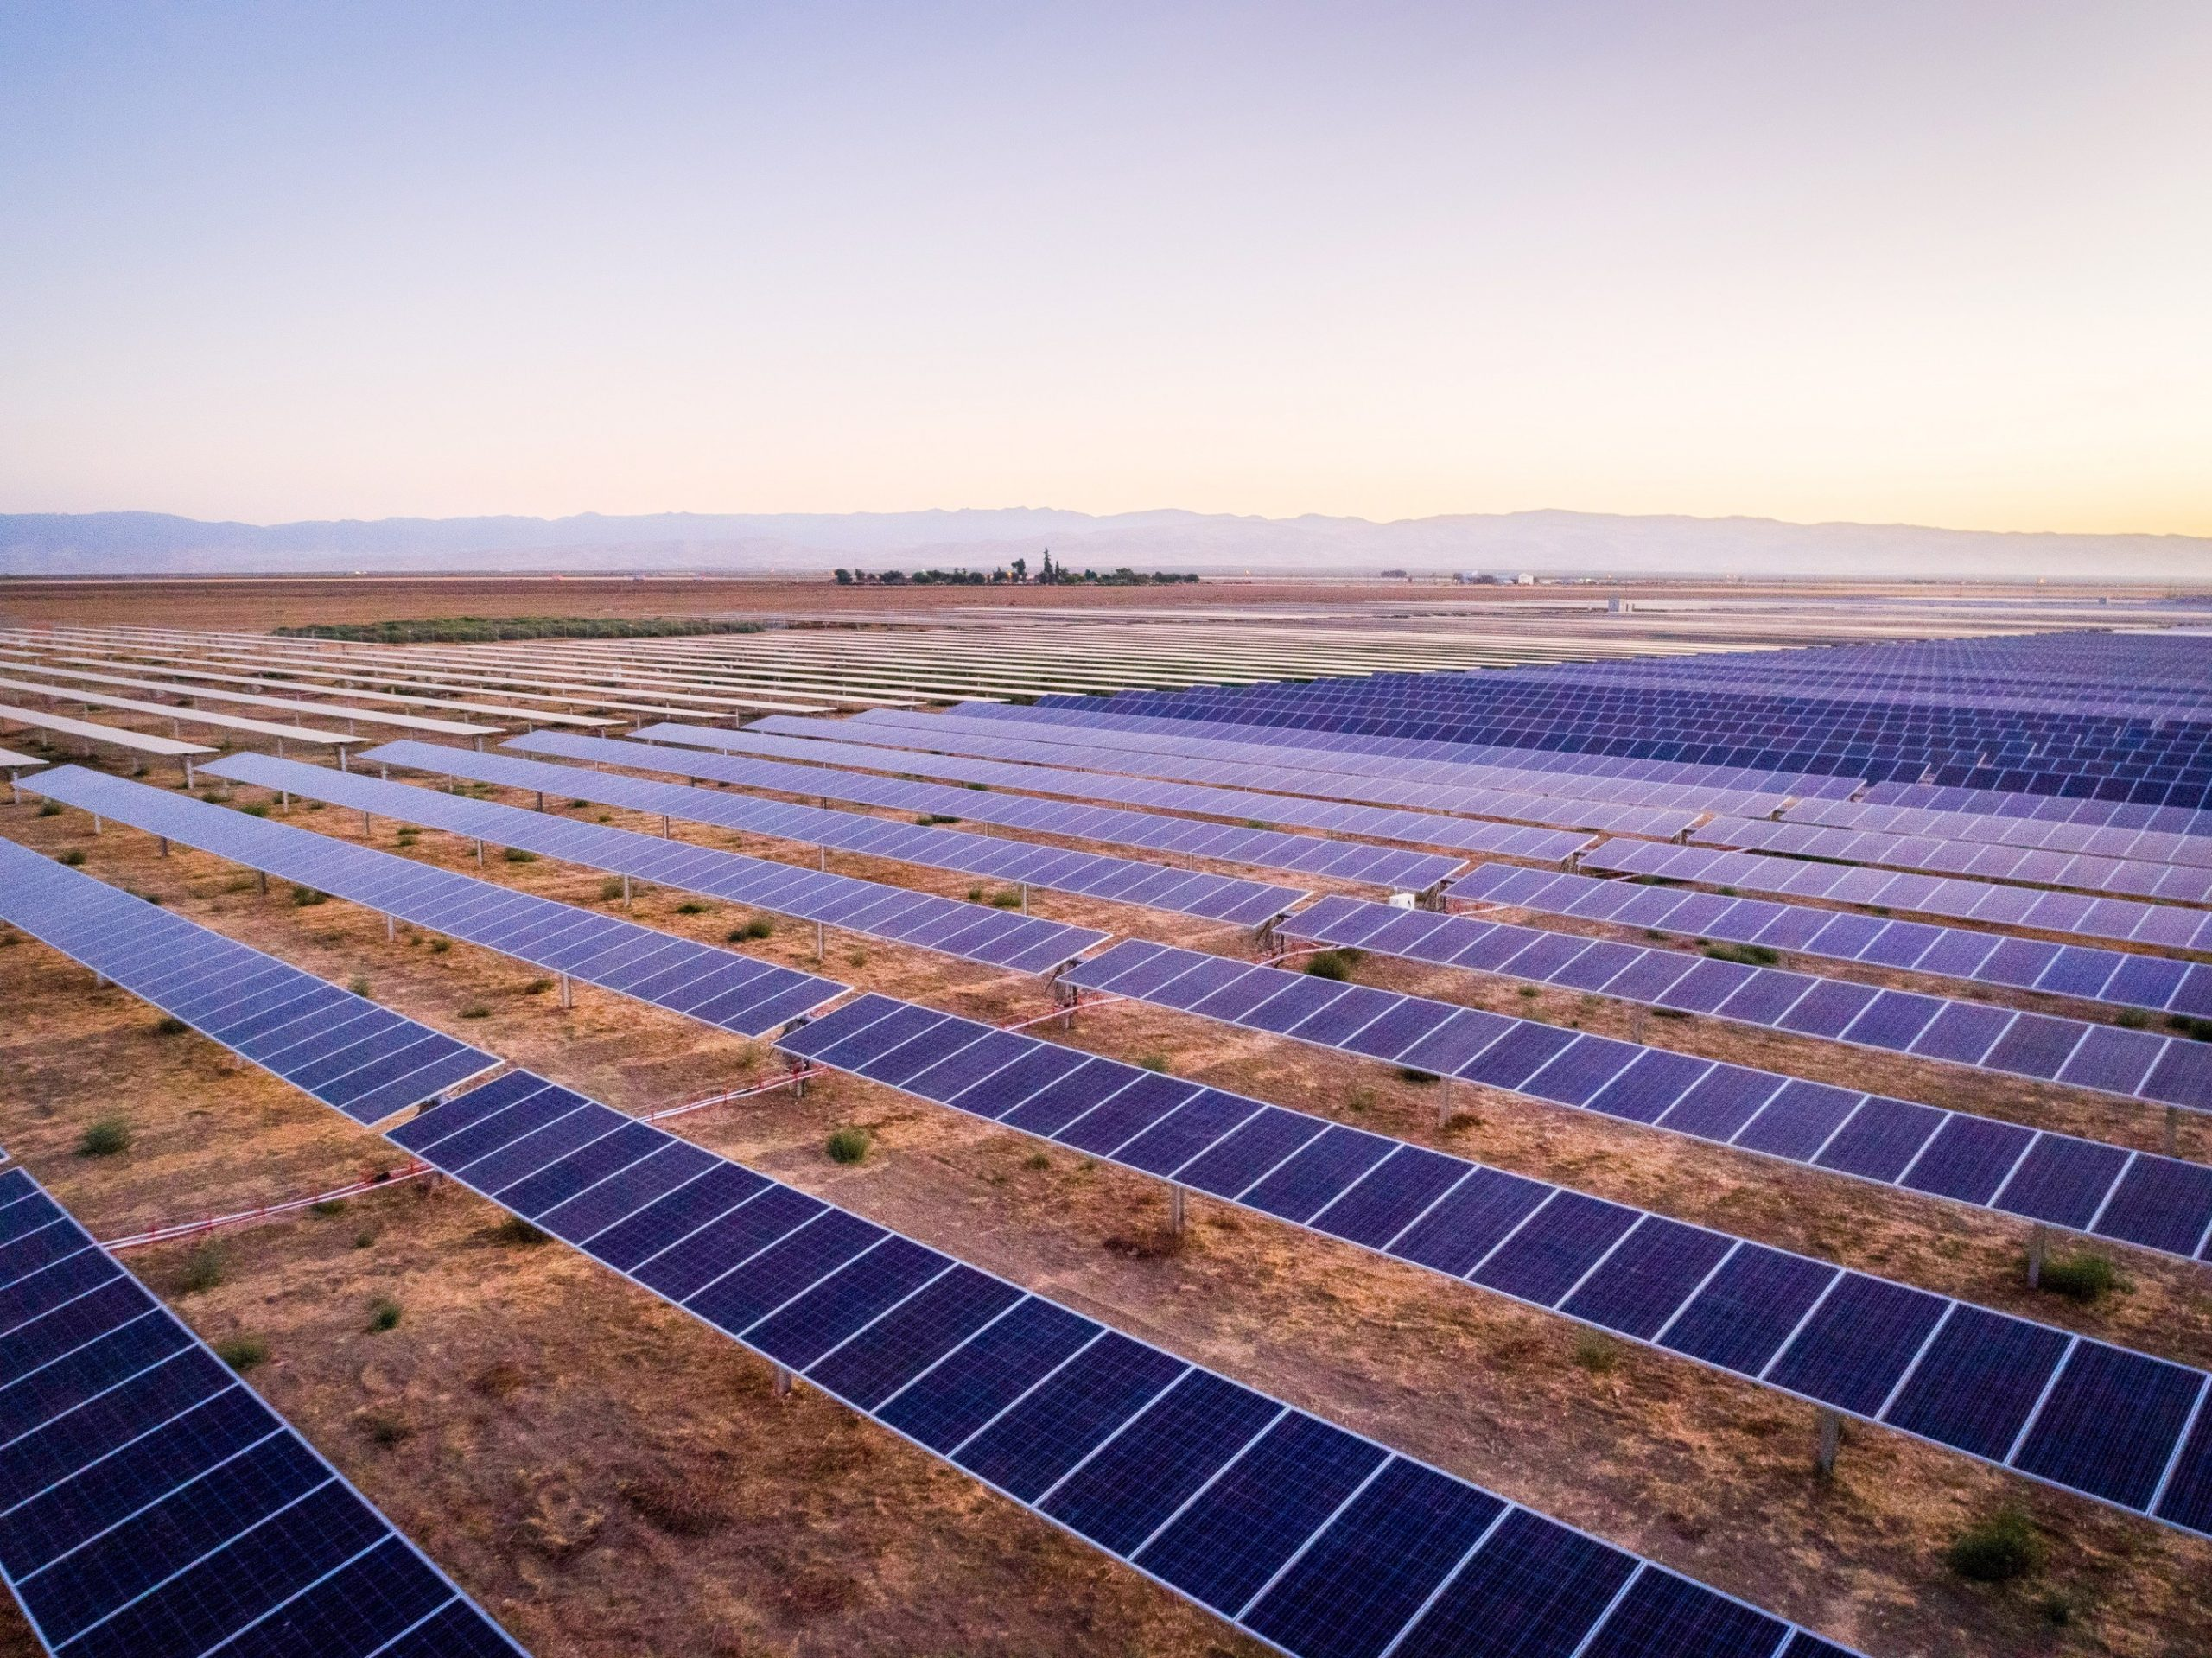 Sungrow Crosses 1 GW of PV Inverter Shipment in Chile